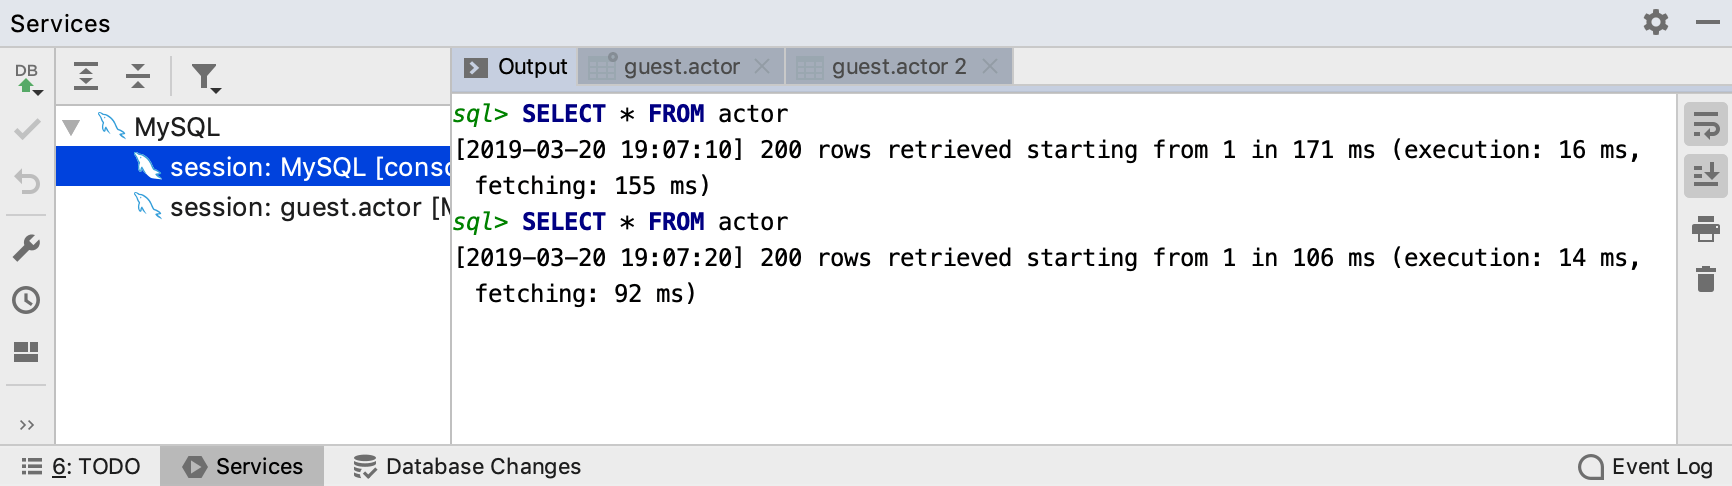 View query log